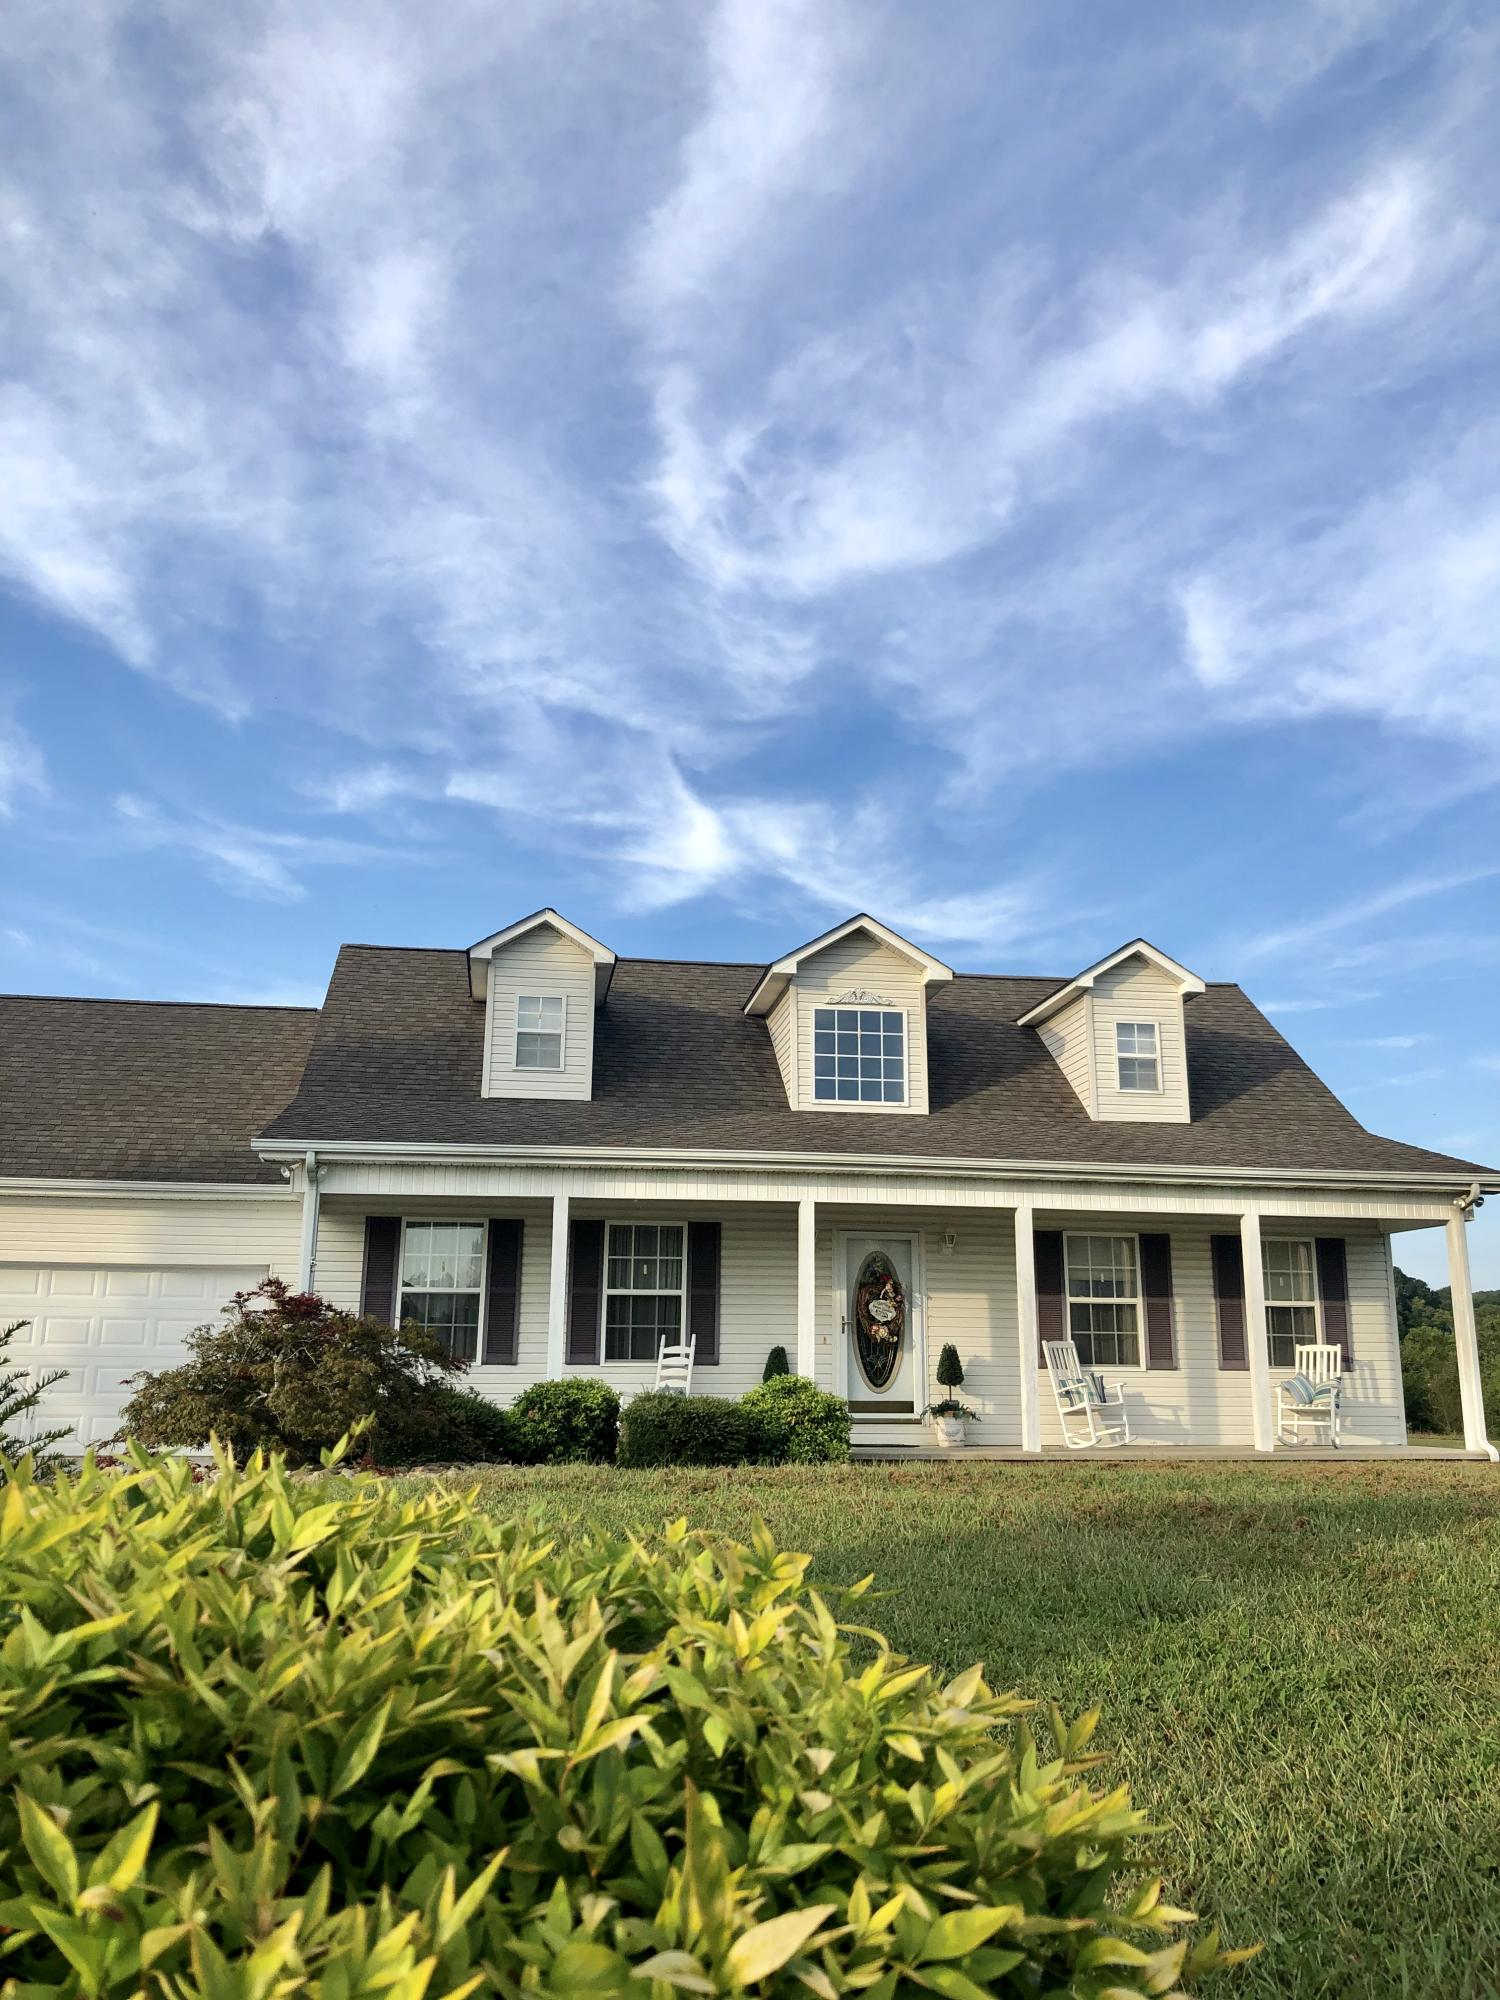 1205 Christianburg Lane, Sweetwater, Tennessee 37874, 3 Bedrooms Bedrooms, ,2 BathroomsBathrooms,Single Family,For Sale,Christianburg,1094235